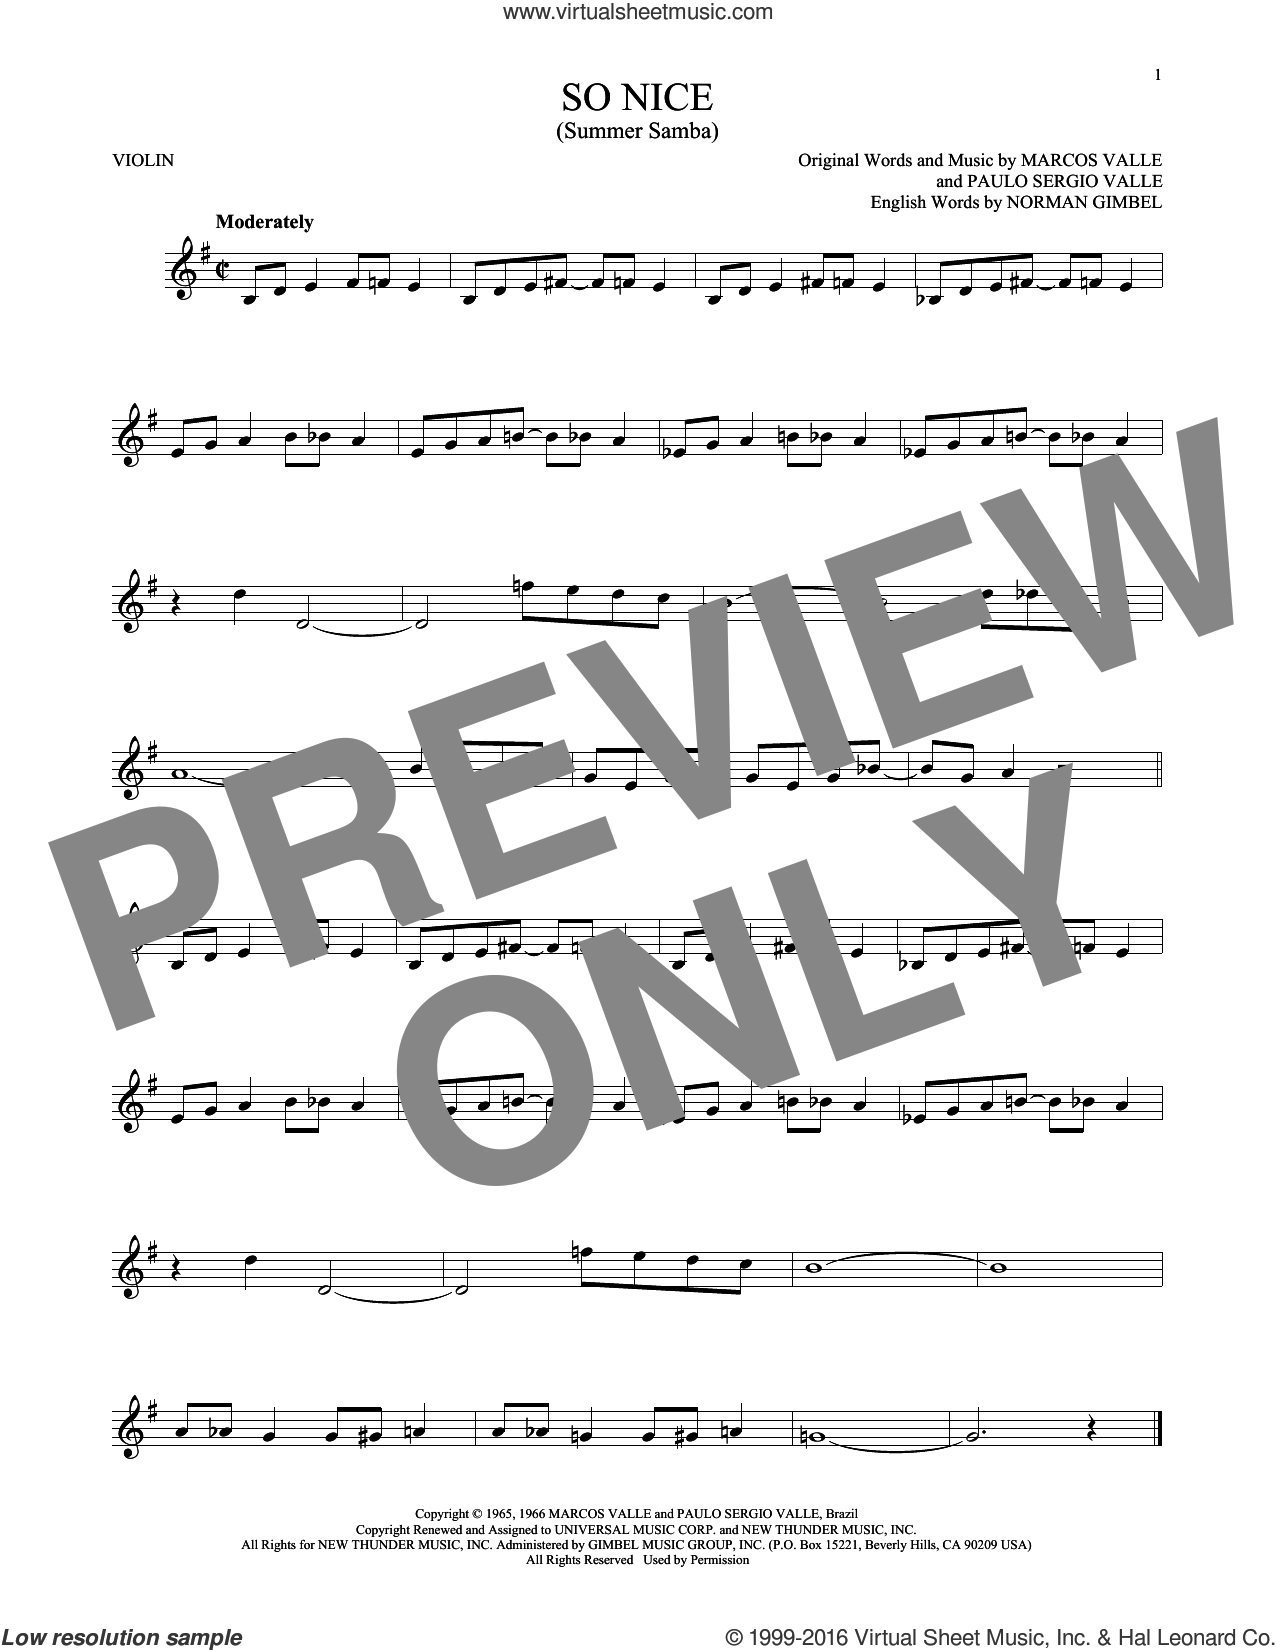 So Nice (Summer Samba) sheet music for violin solo by Norman Gimbel, Walter Wanderley, Marcos Valle and Paulo Sergio Valle, intermediate. Score Image Preview.